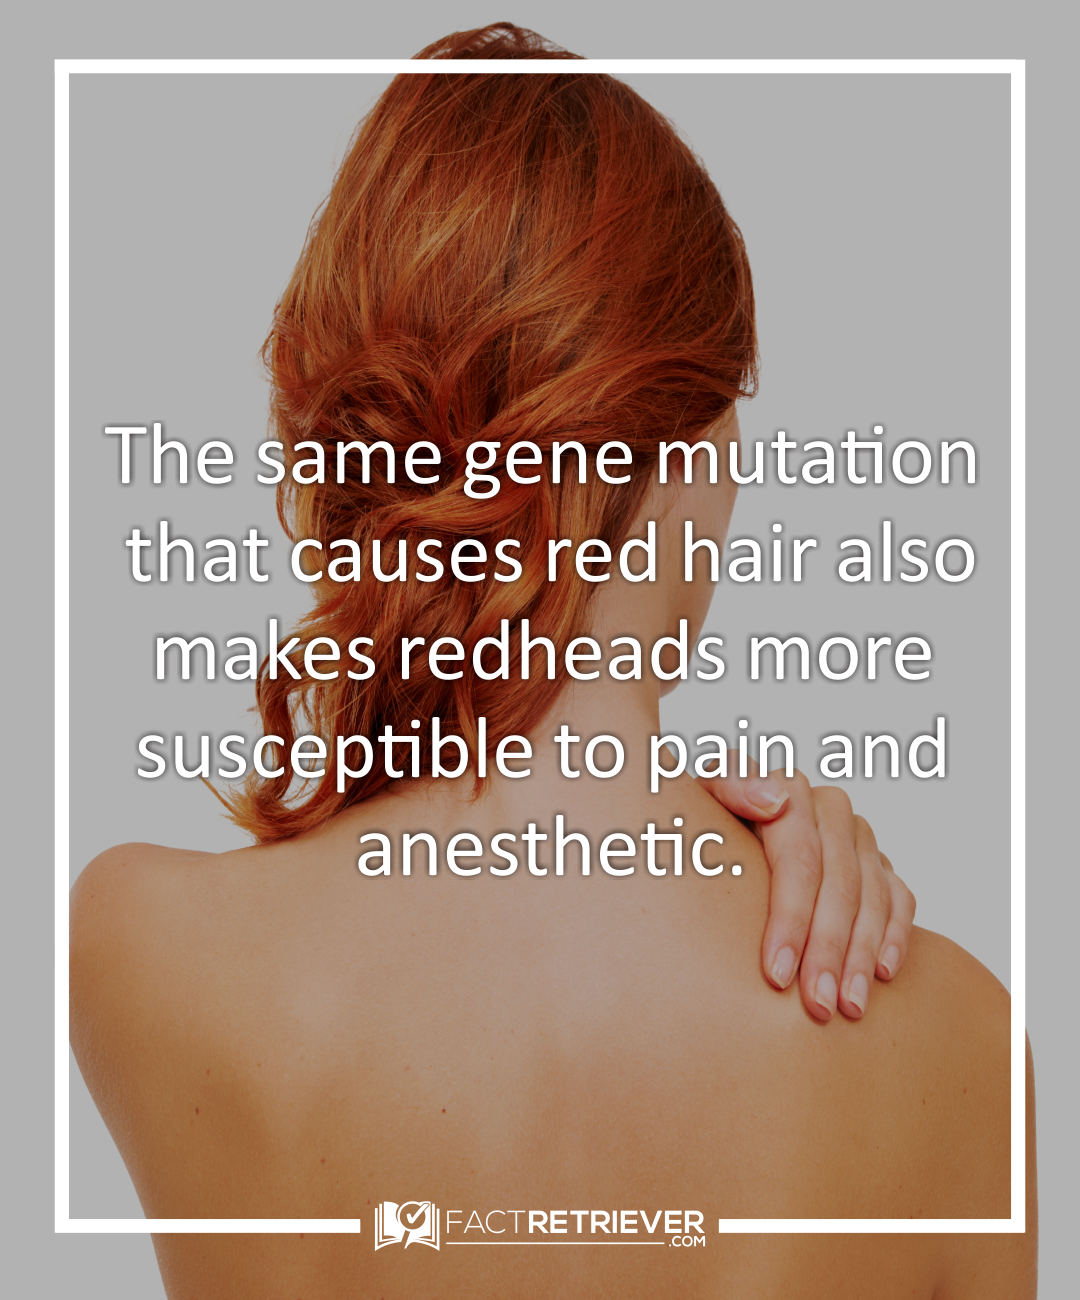 42 Interesting Facts About Redheads Factretriever Com Redhead Facts Redhead Quotes Redheads